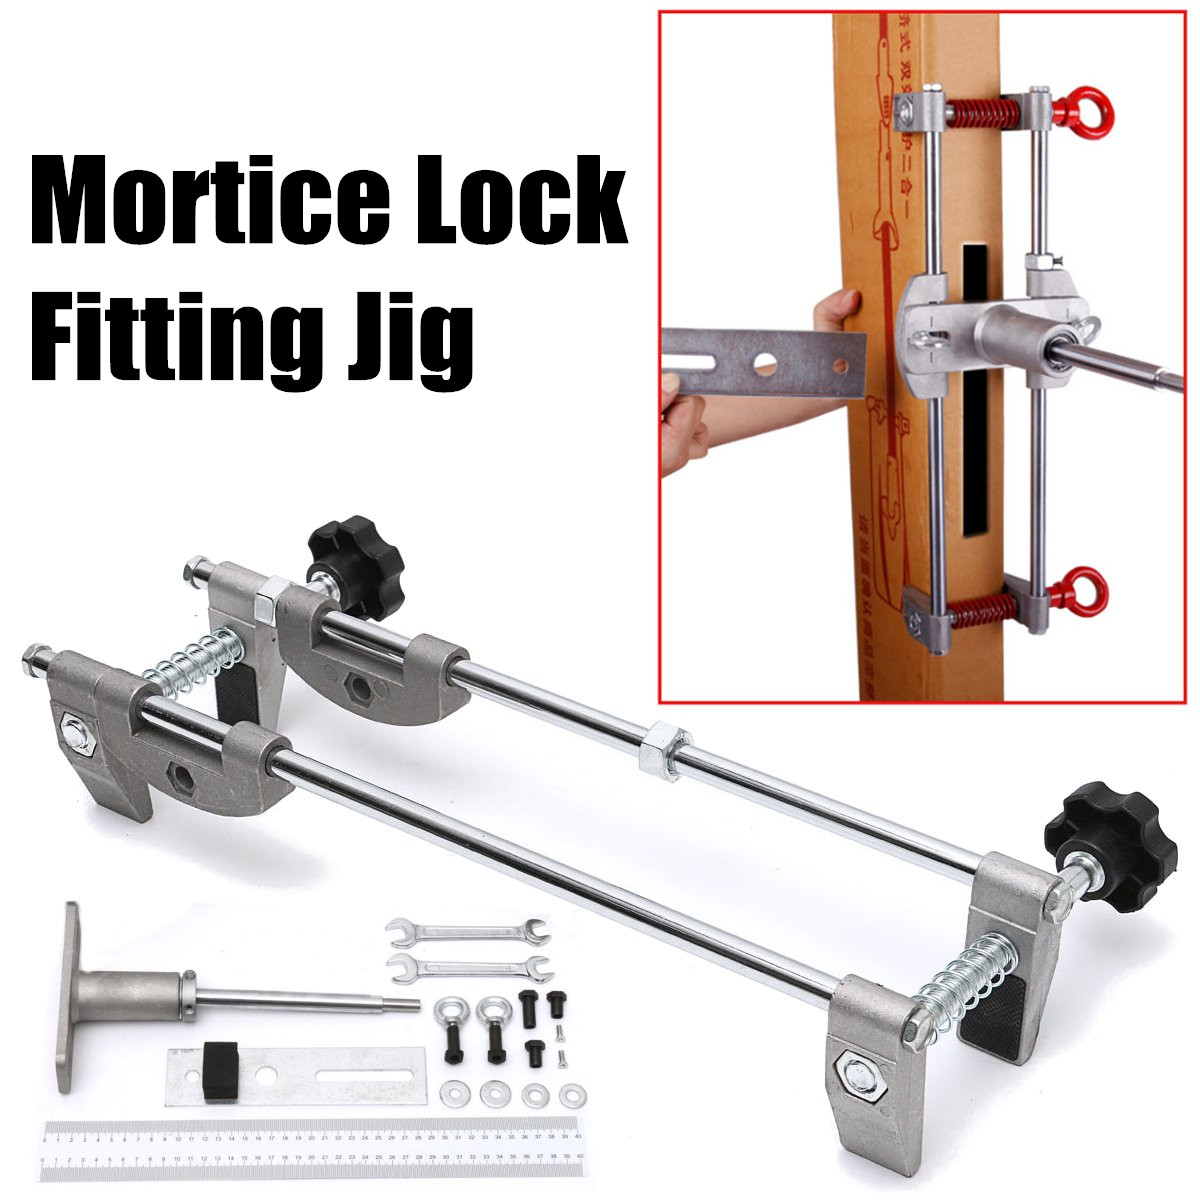 Door Lock Mortiser Fitting Jig Mortice Kit with Wrench Home Improvement Tool Mortice Door Fitting Jig цена